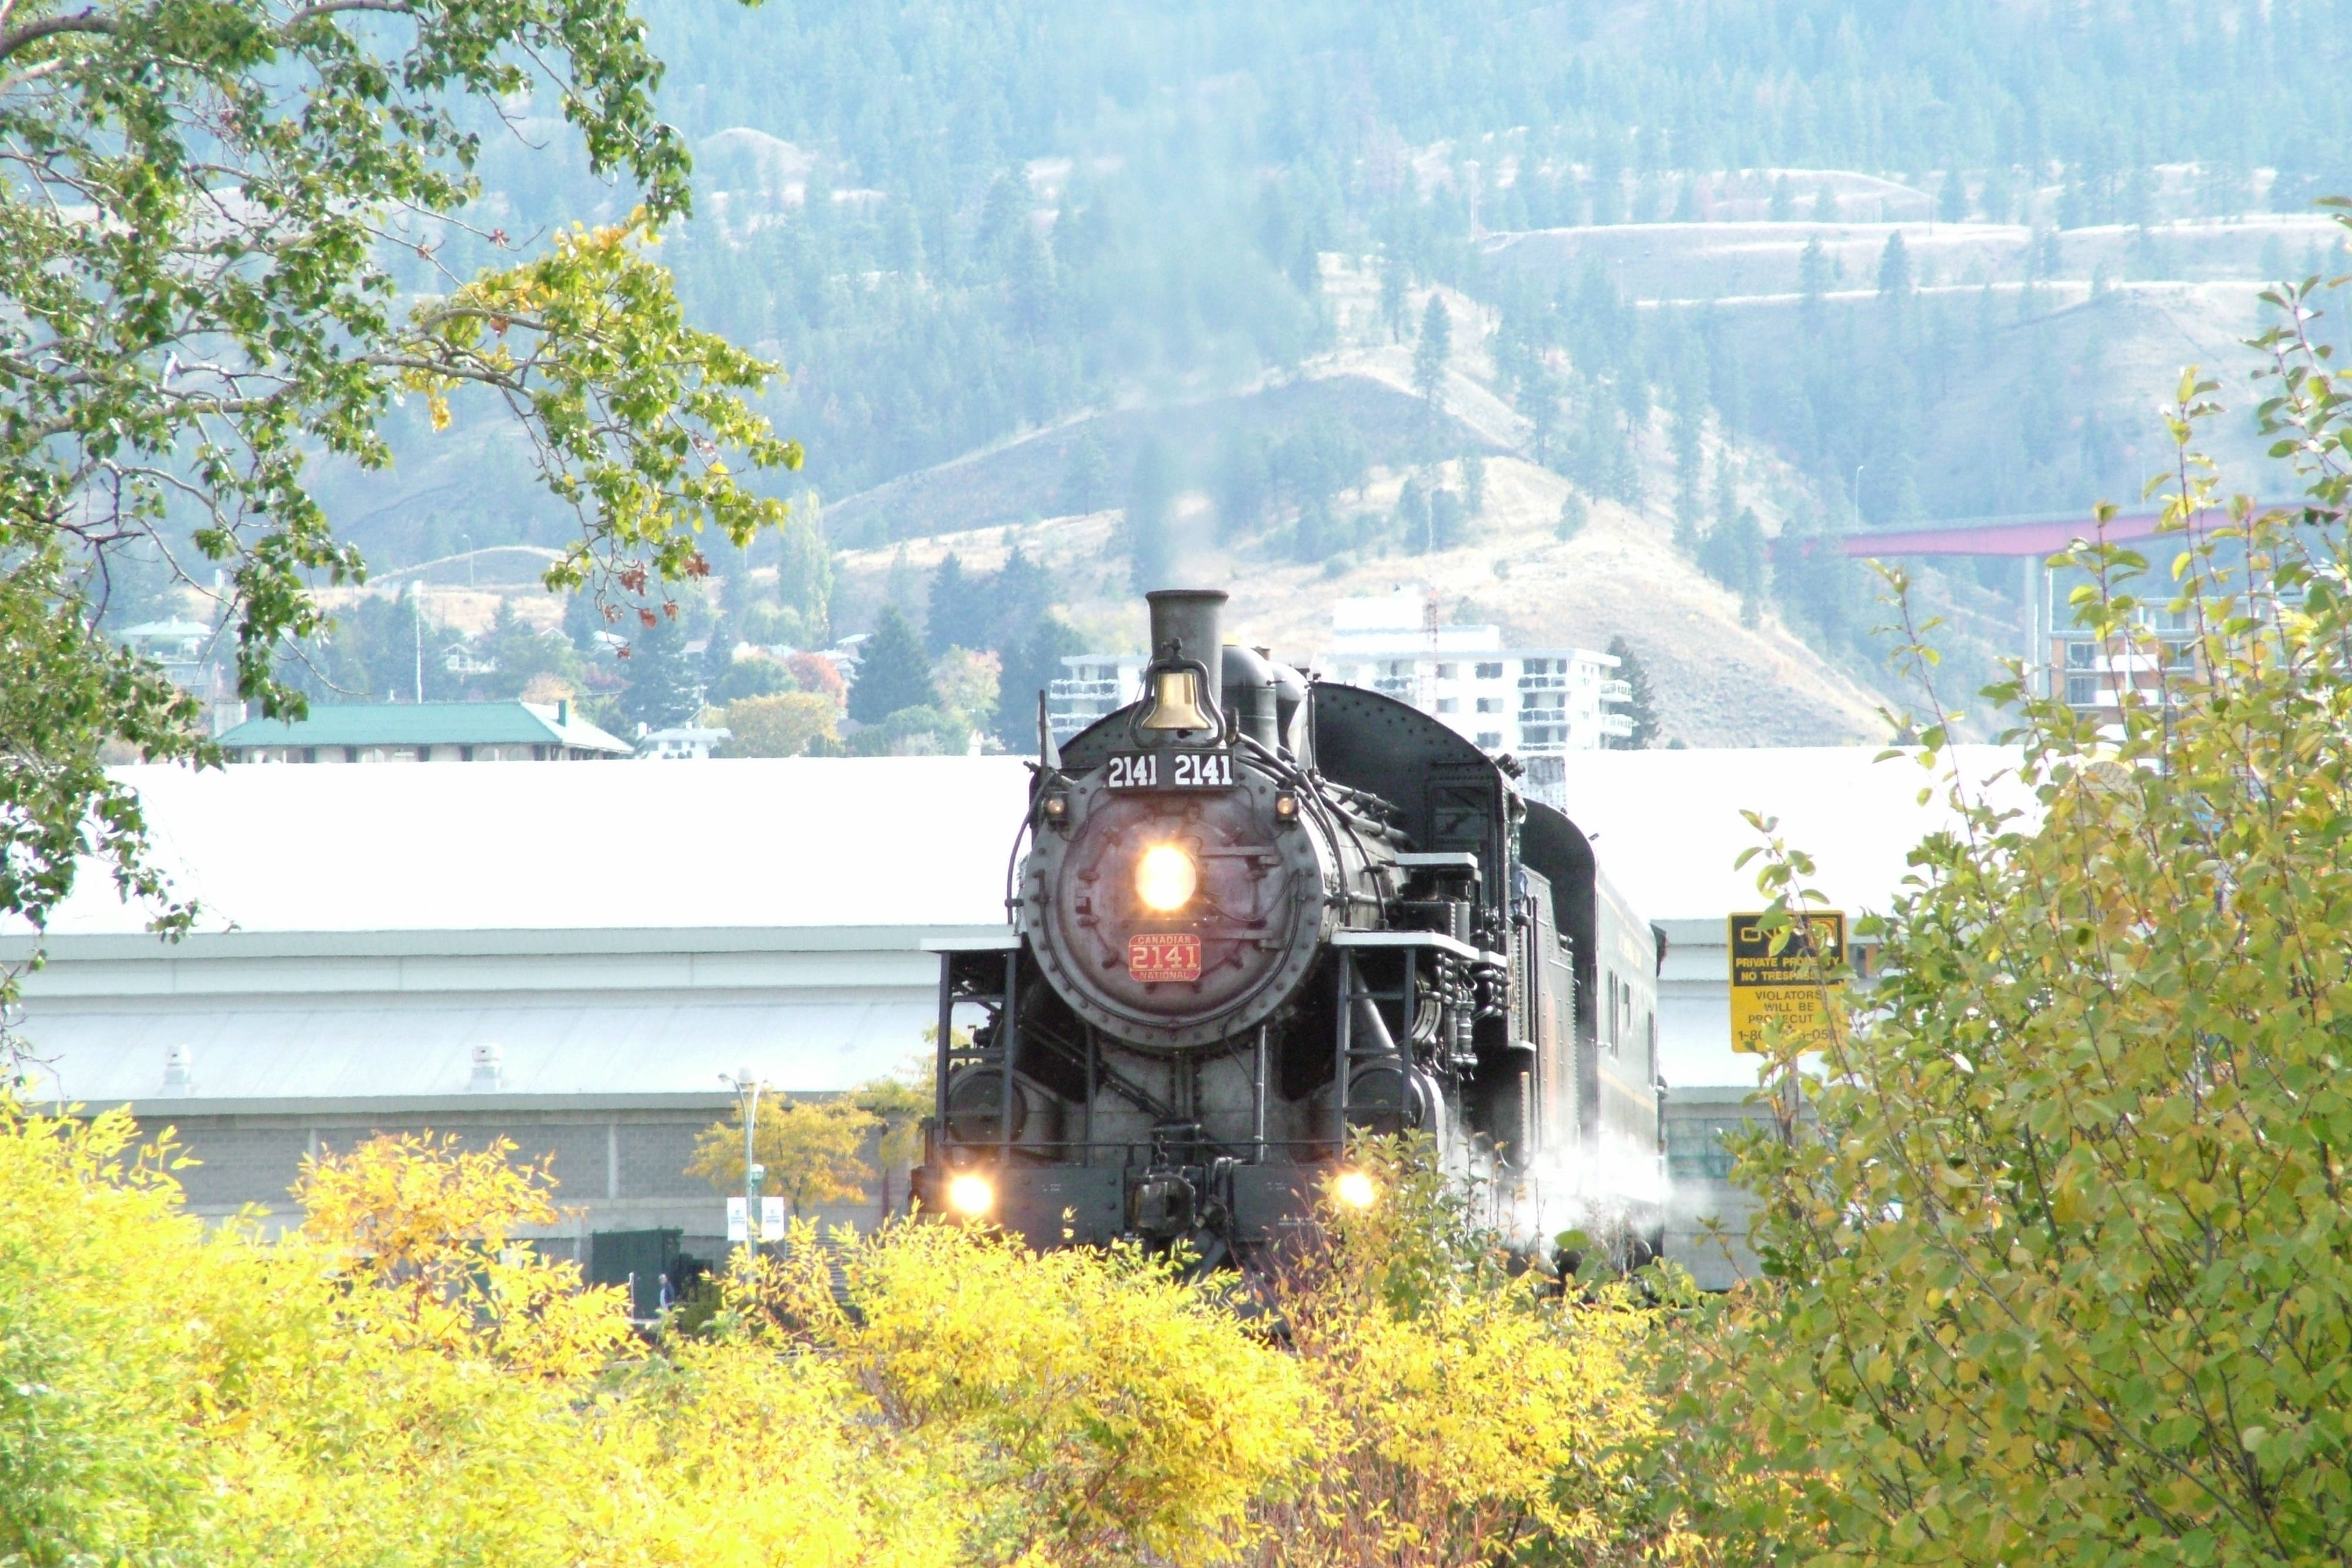 2141 Spirit of Kamloops